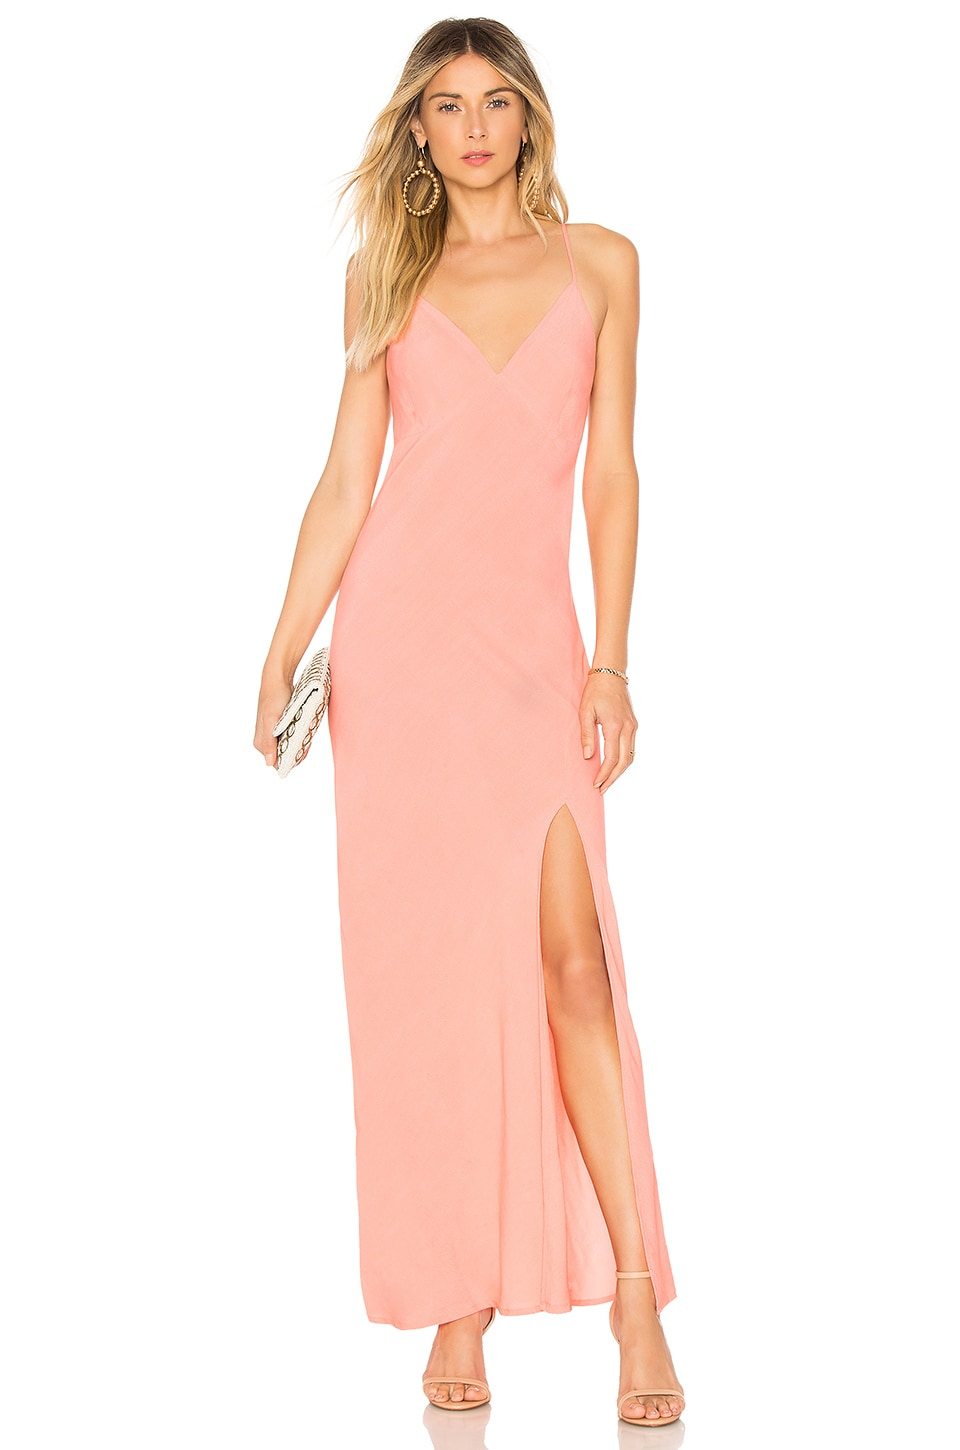 Cleobella Becket Slip Dress in Soft Coral